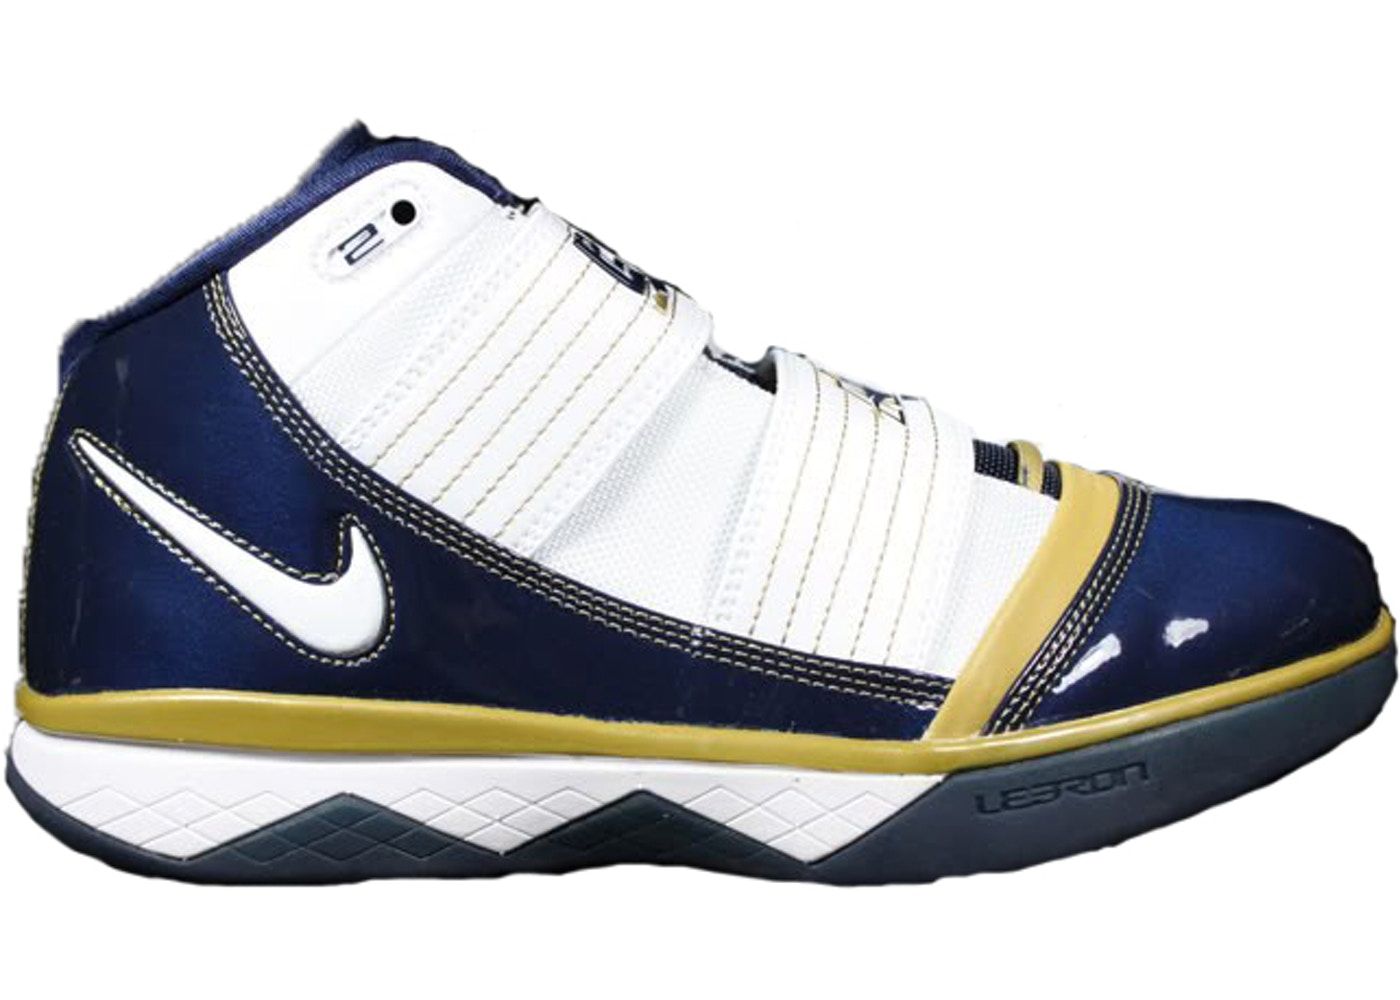 ナイキ NIKE ズーム ソルジャー スニーカー 【 ZOOM SOLDIER III AKRON HOME WHITE MIDNIGHT NAVYMETALLIC GOLD 】 メンズ 送料無料